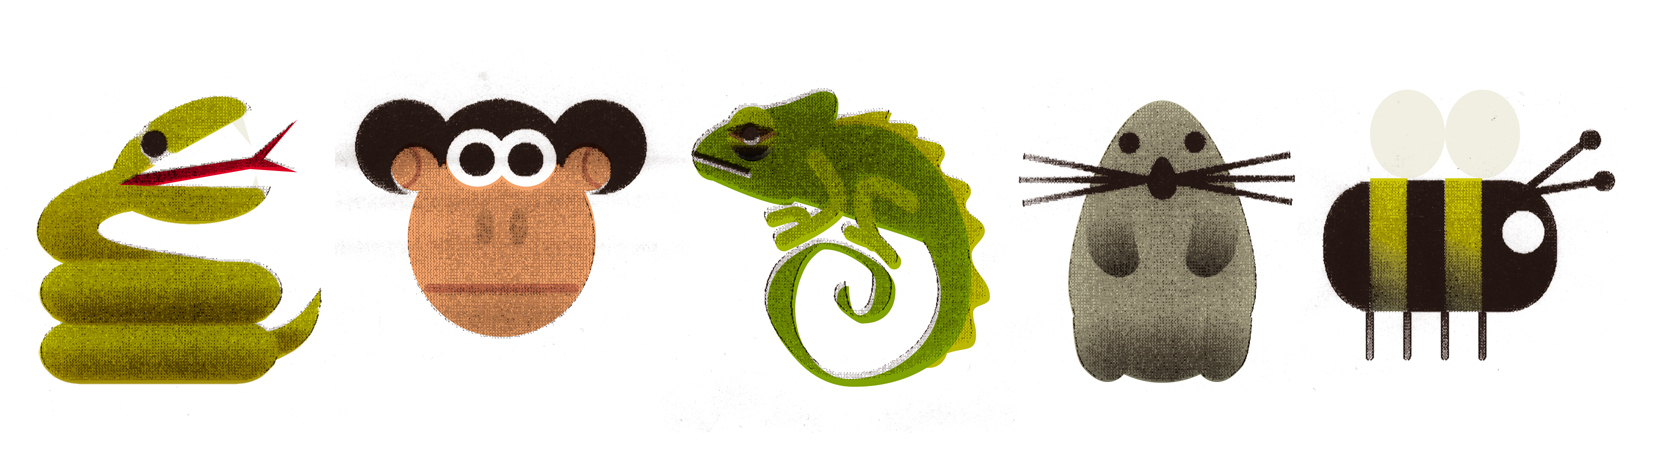 Monkey and Chameleon